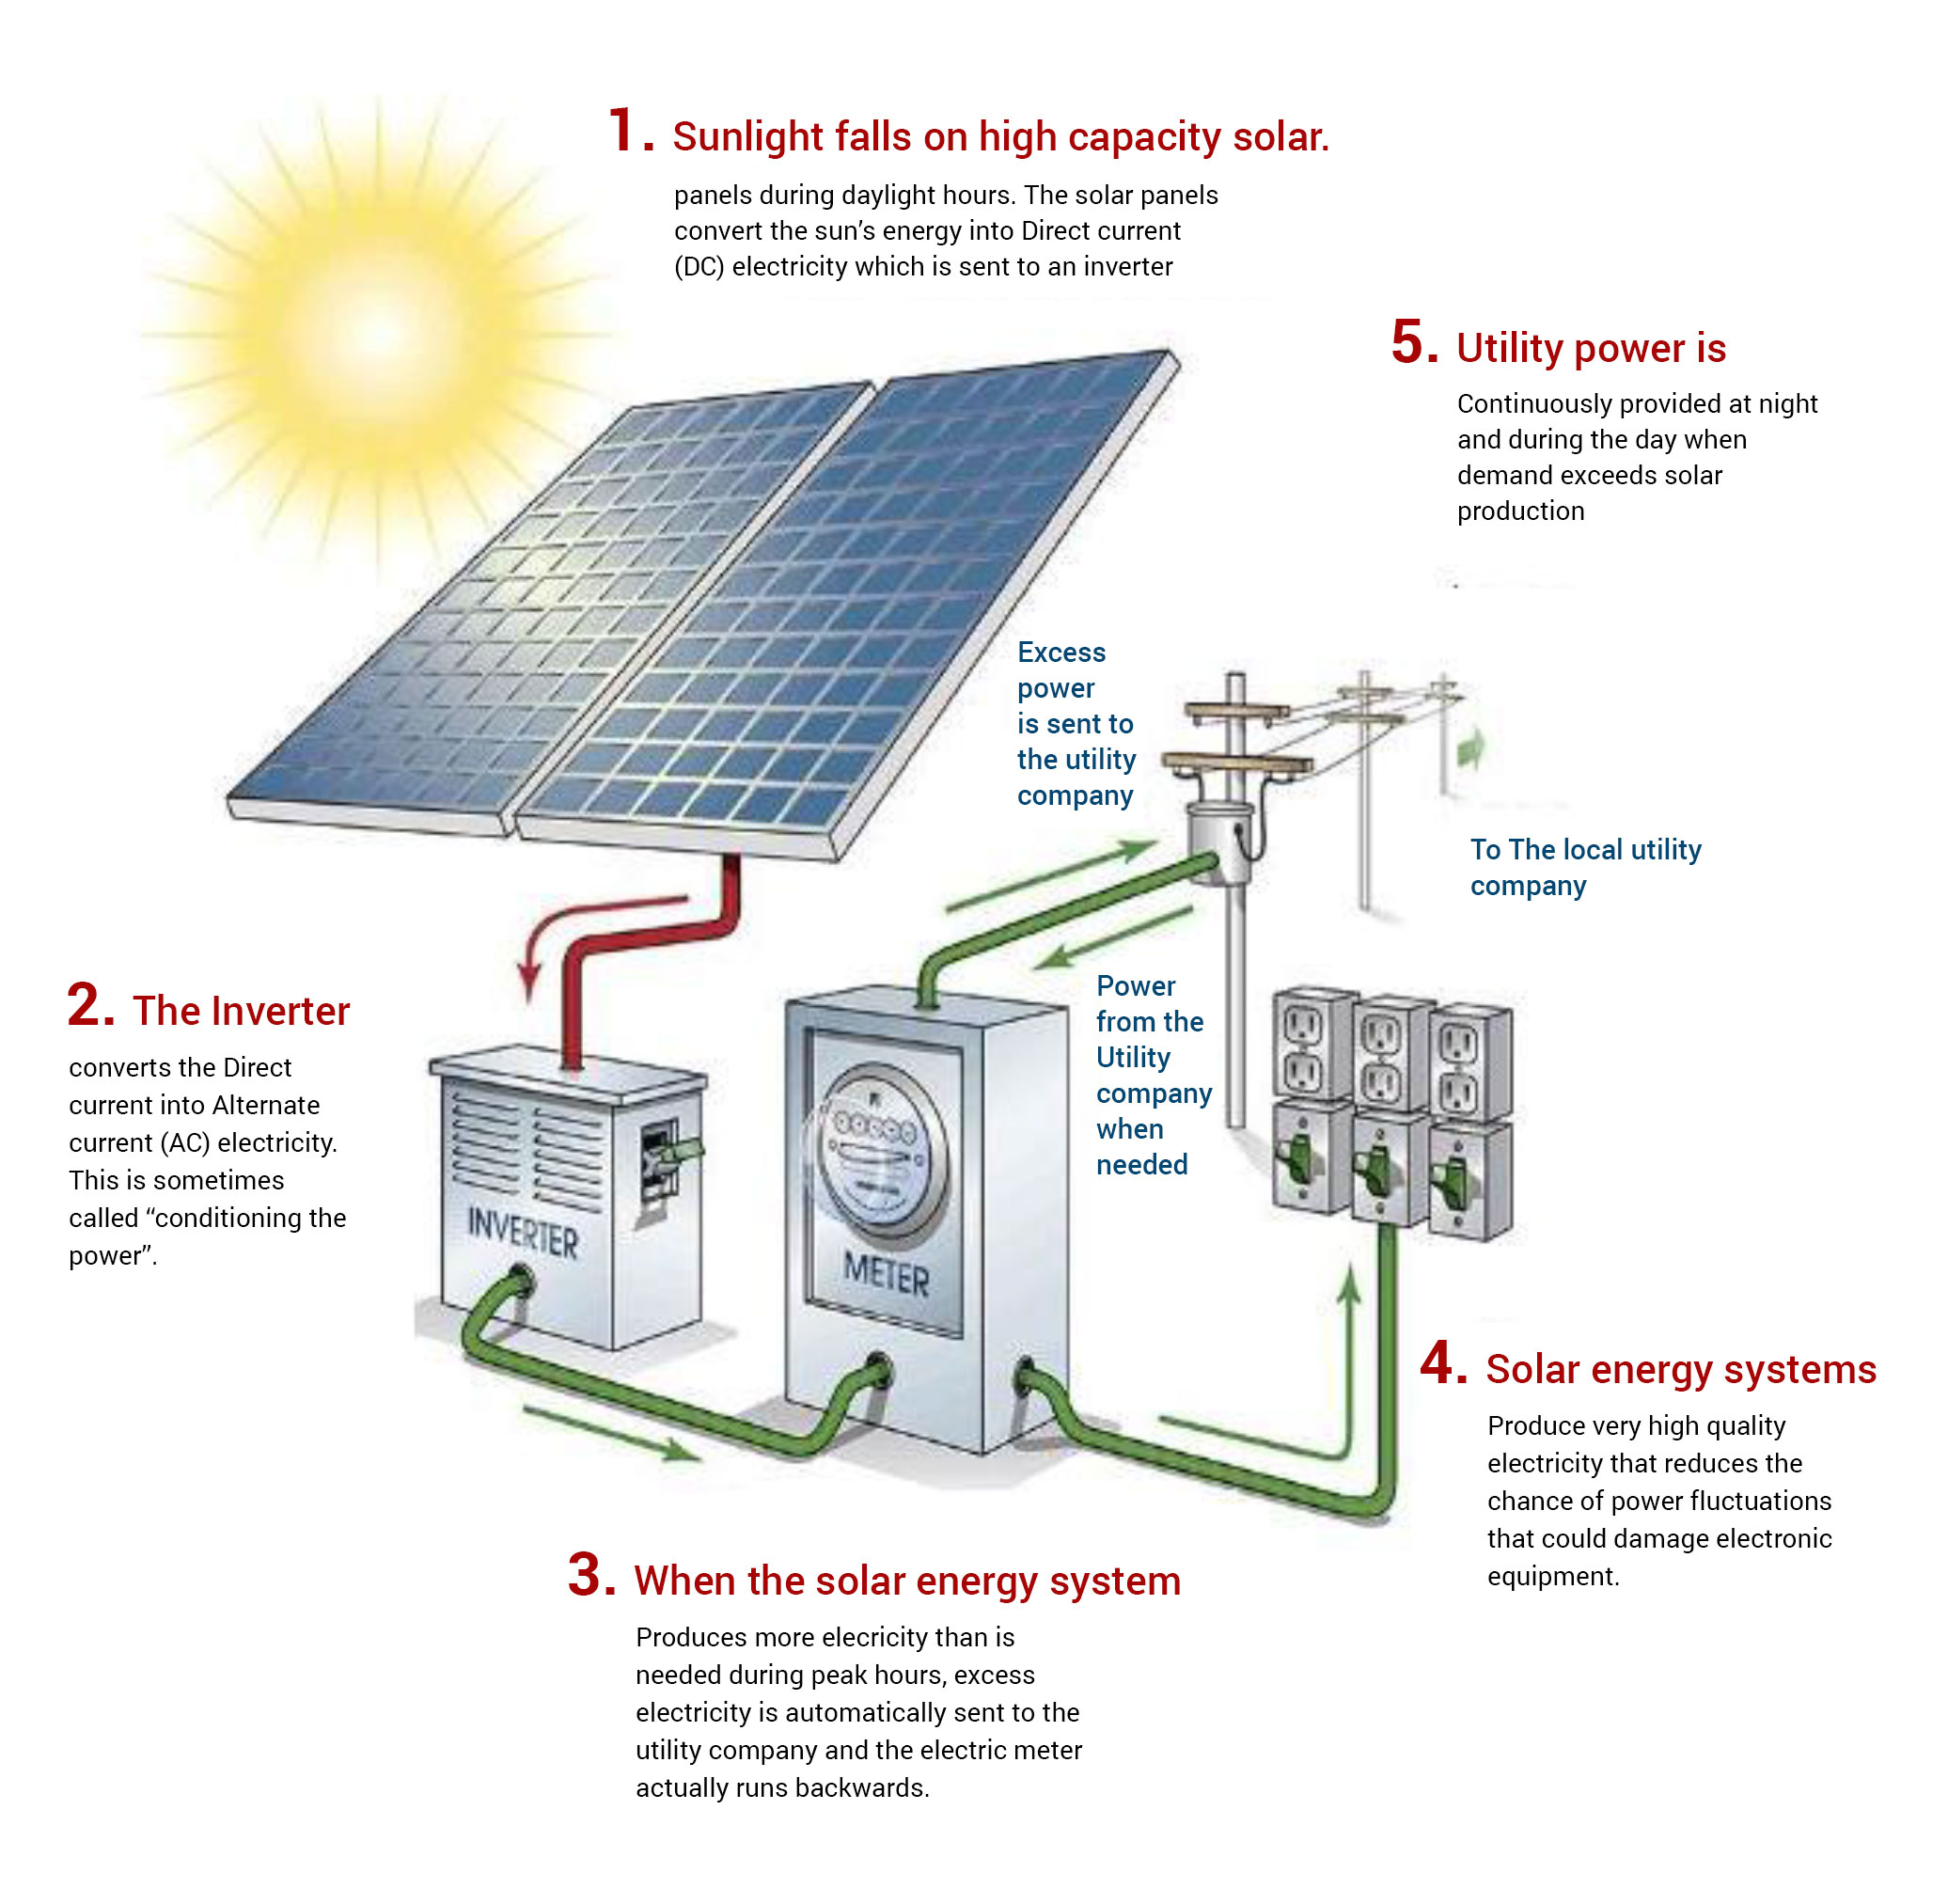 how solar power works diagram invisible fence gps ongrid panels kearala panel working